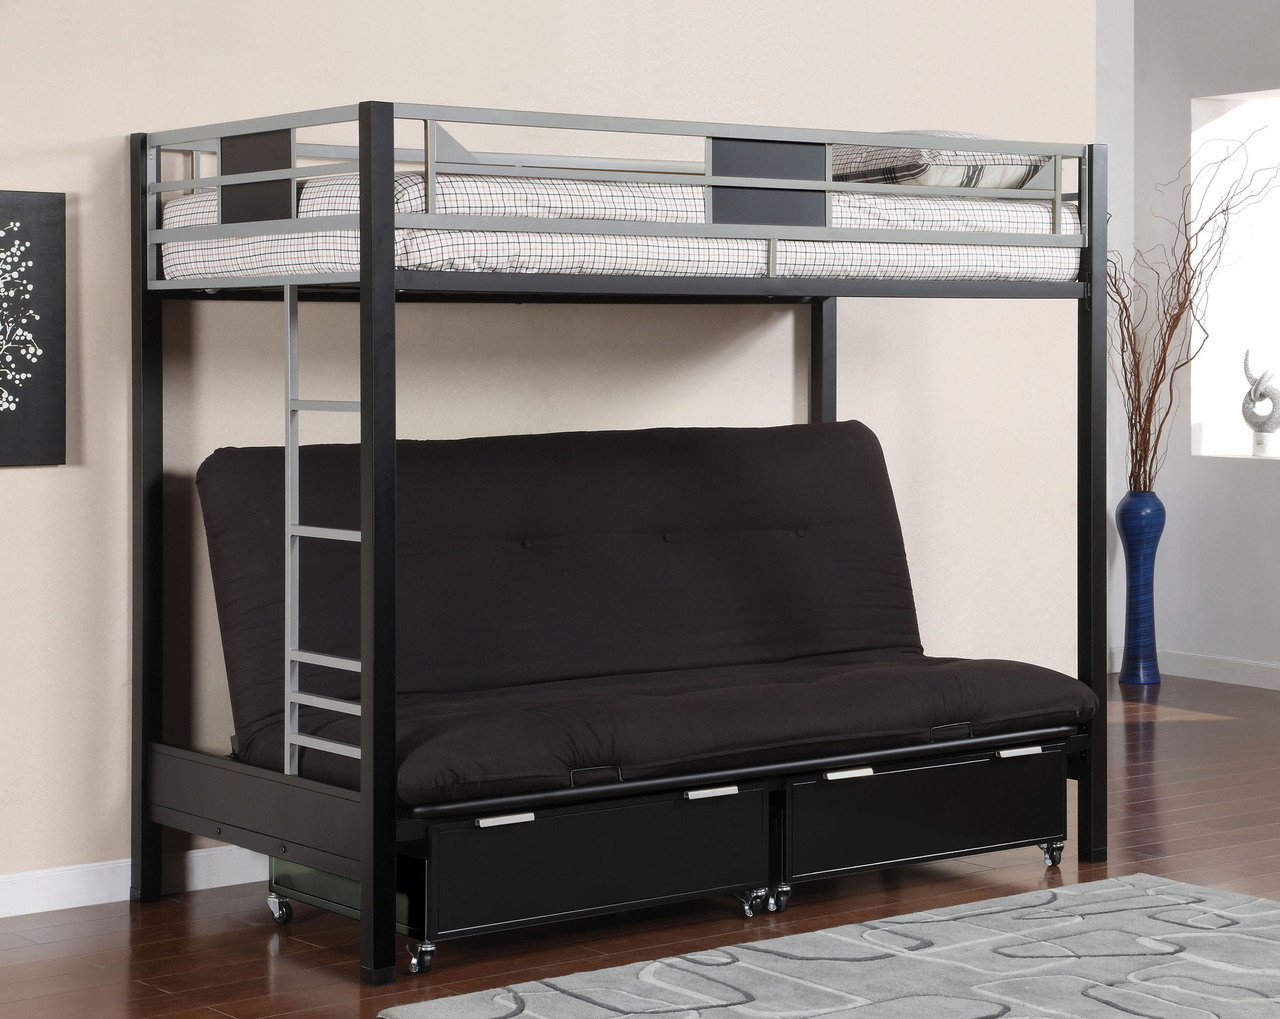 silver  u0026 black metal twin futon bunk bed   futon bunk bed silver  u0026 black metal twin futon bunk bed youth furniture  rh   efurniturehouse